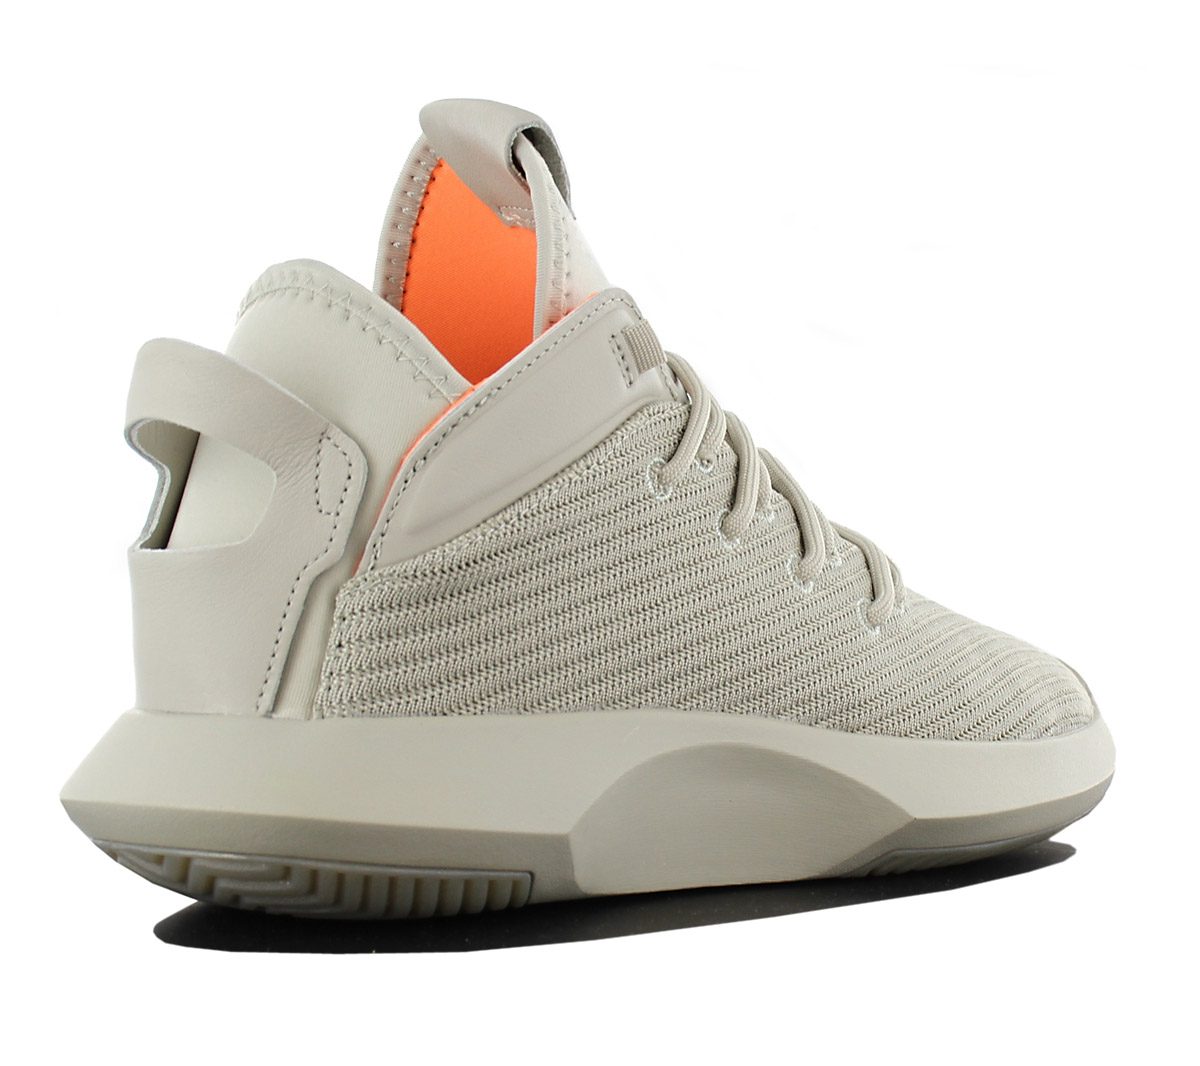 finest selection 2f741 d4ab5 Adidas Crazy 1 Adv Ck Mens Sneakers Basketball Shoes Sneaker